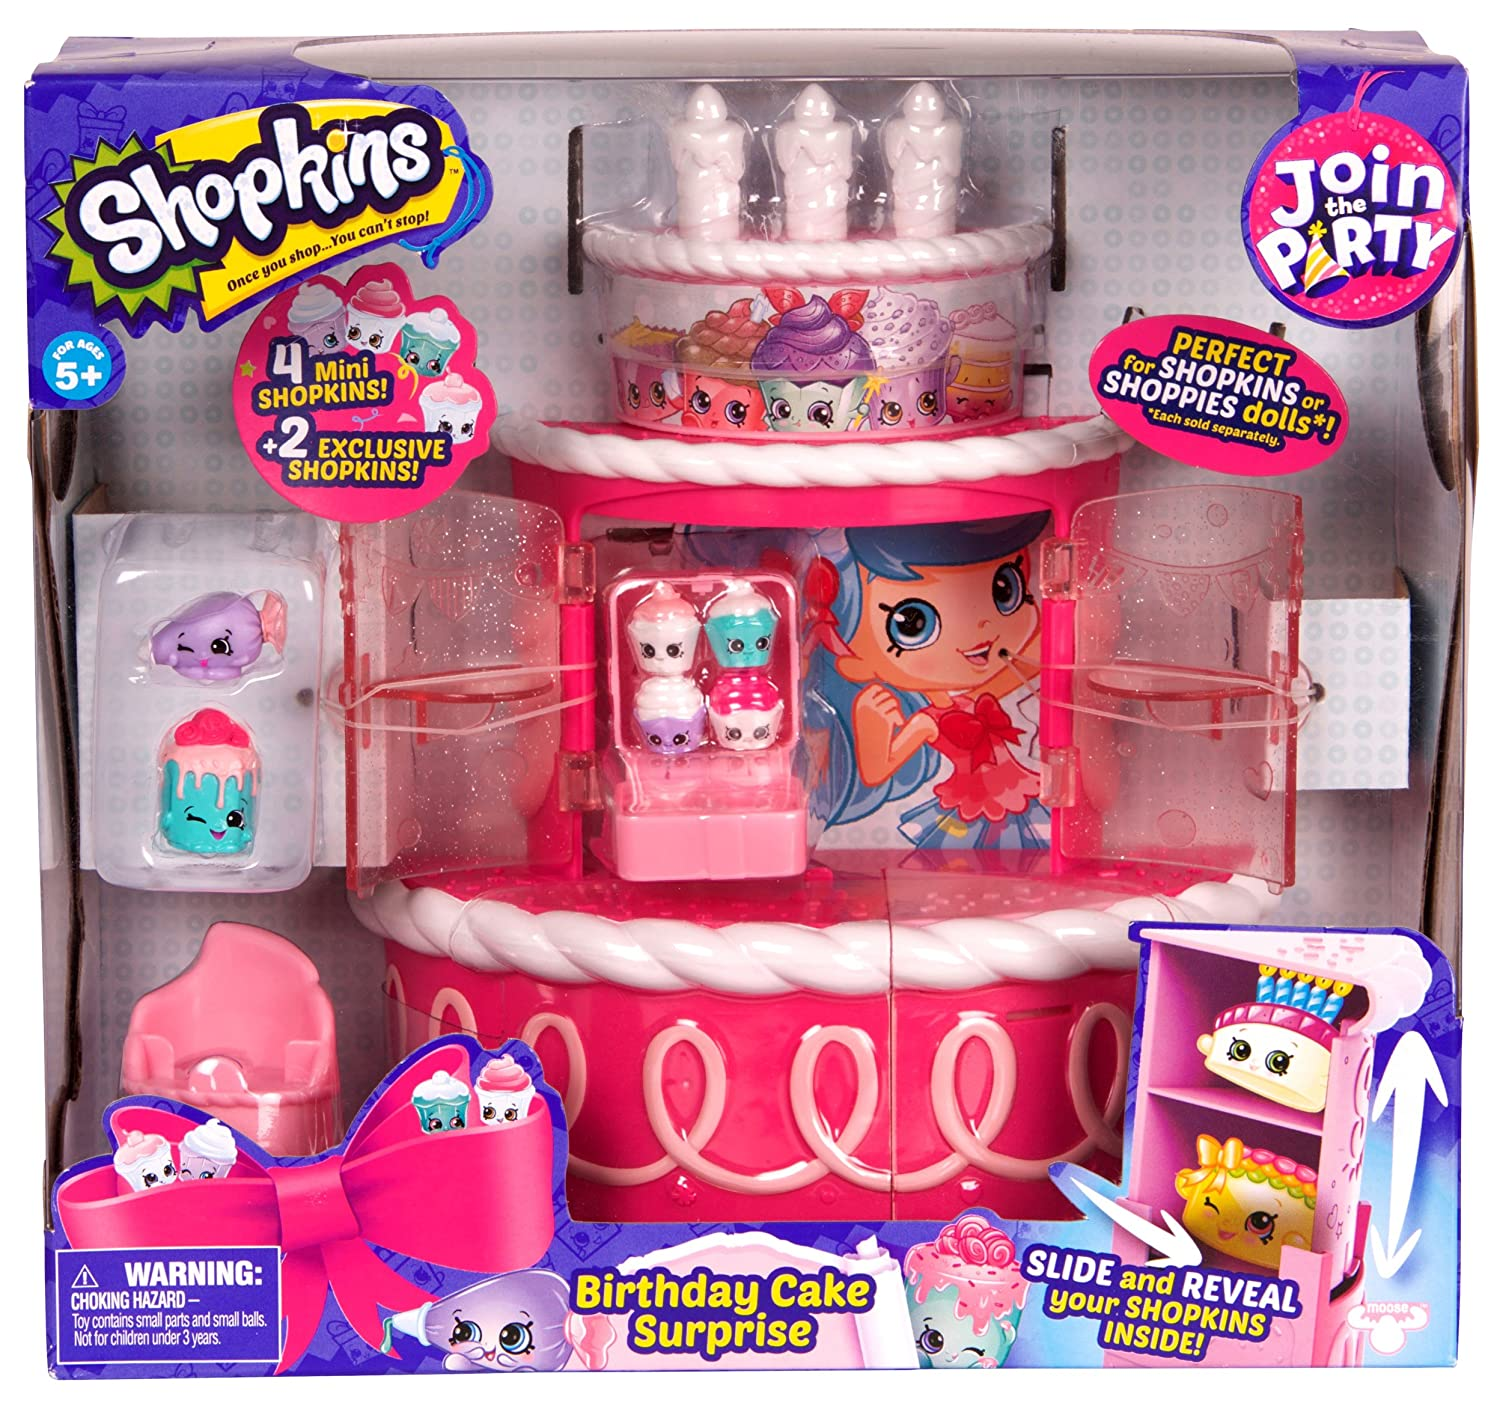 Shopkins Join the Party- Birthday Cake Surprise